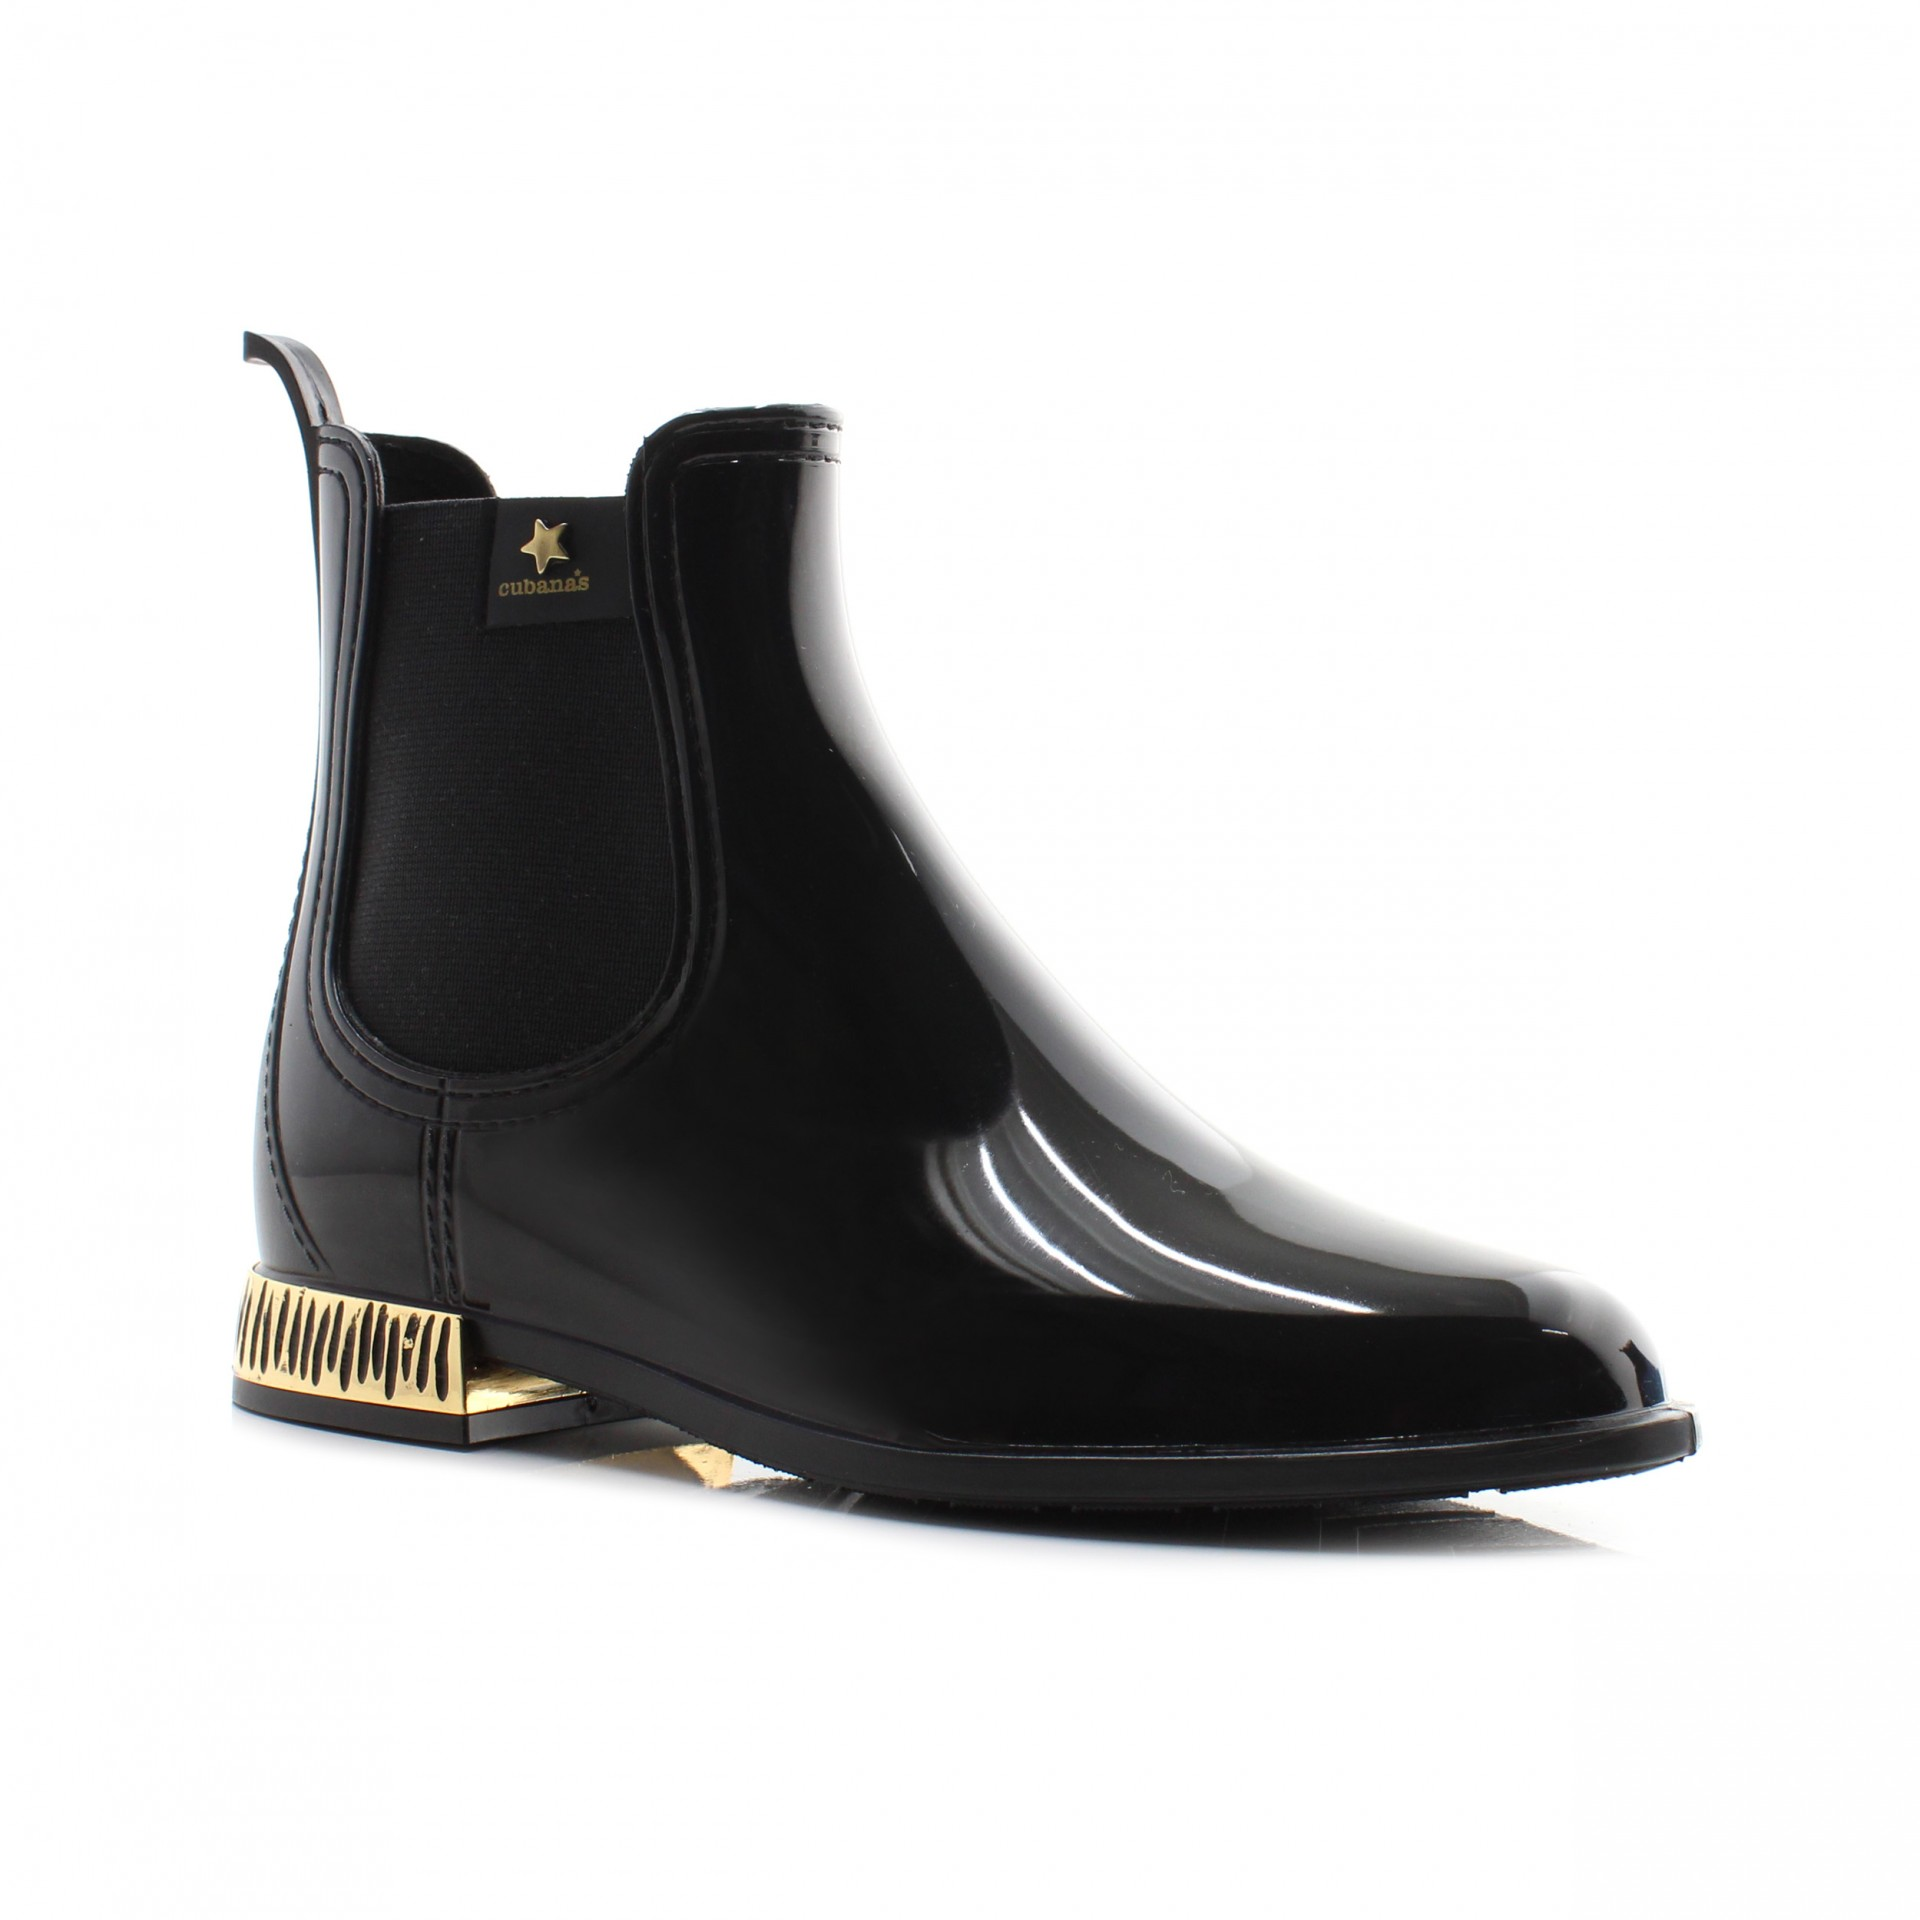 RAINYBOOT CUBANAS RAINY1160 BLACK+GOLD